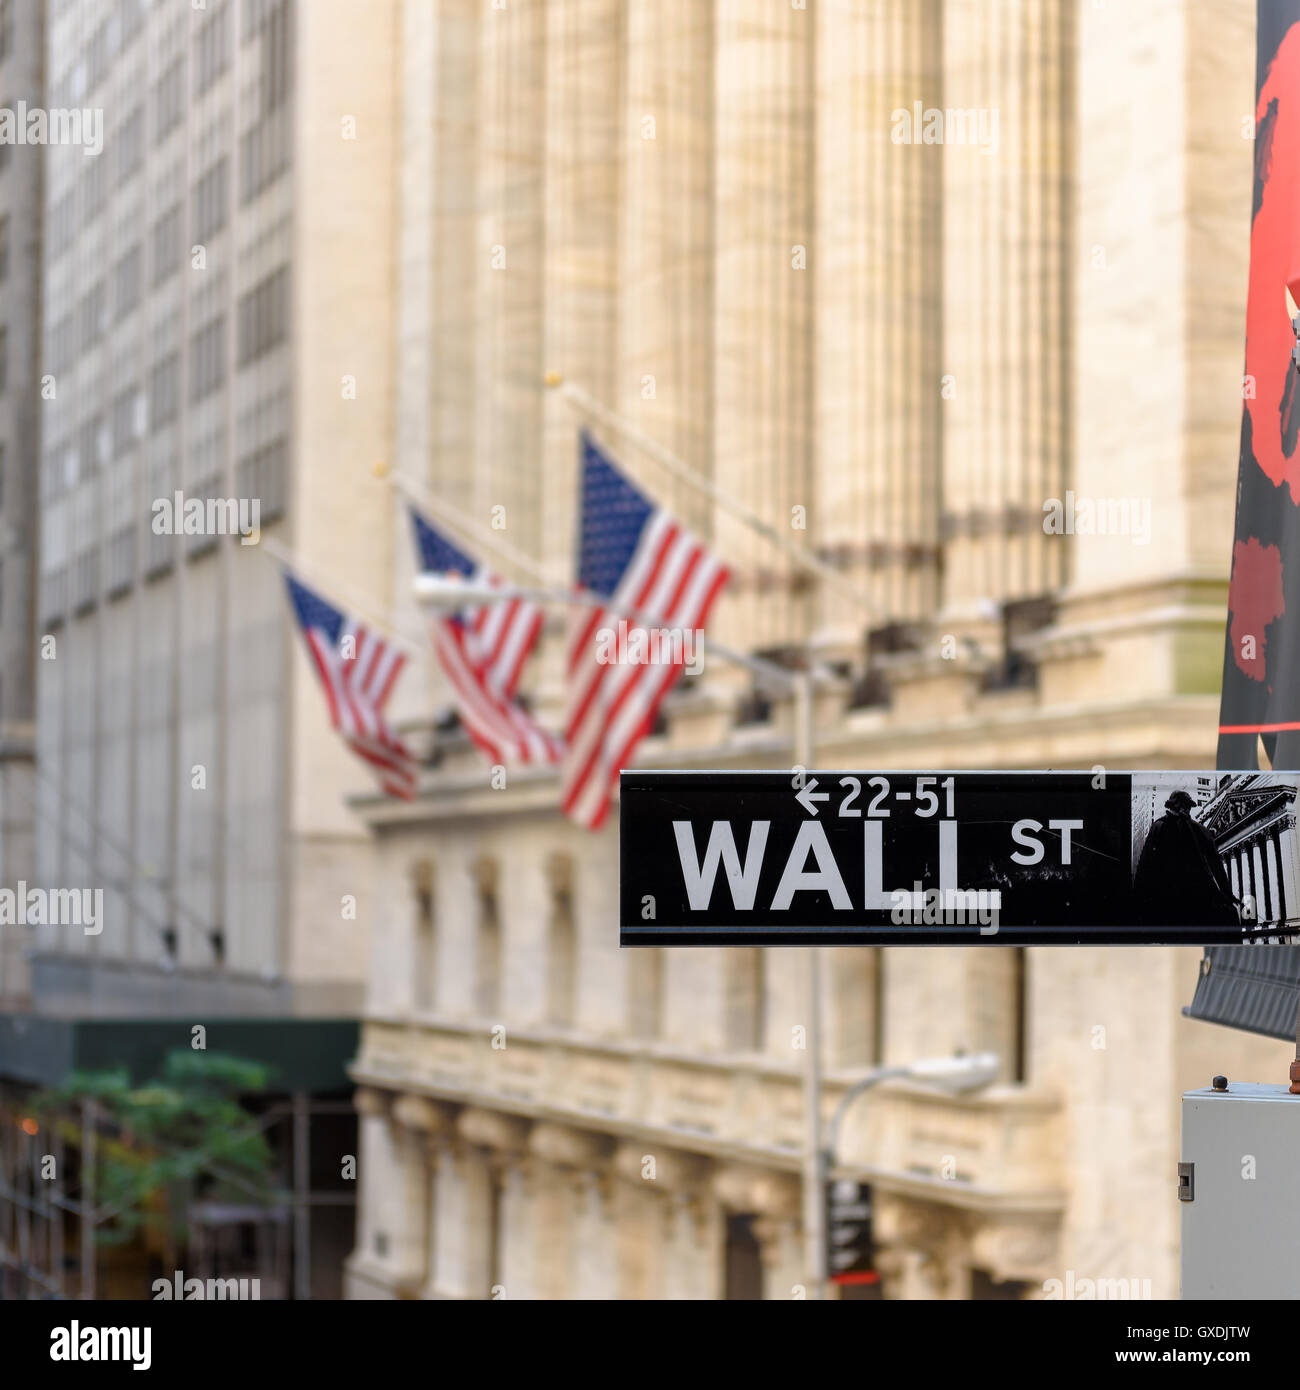 Wall street sign in New York with New York Stock Exchange background - Stock Image